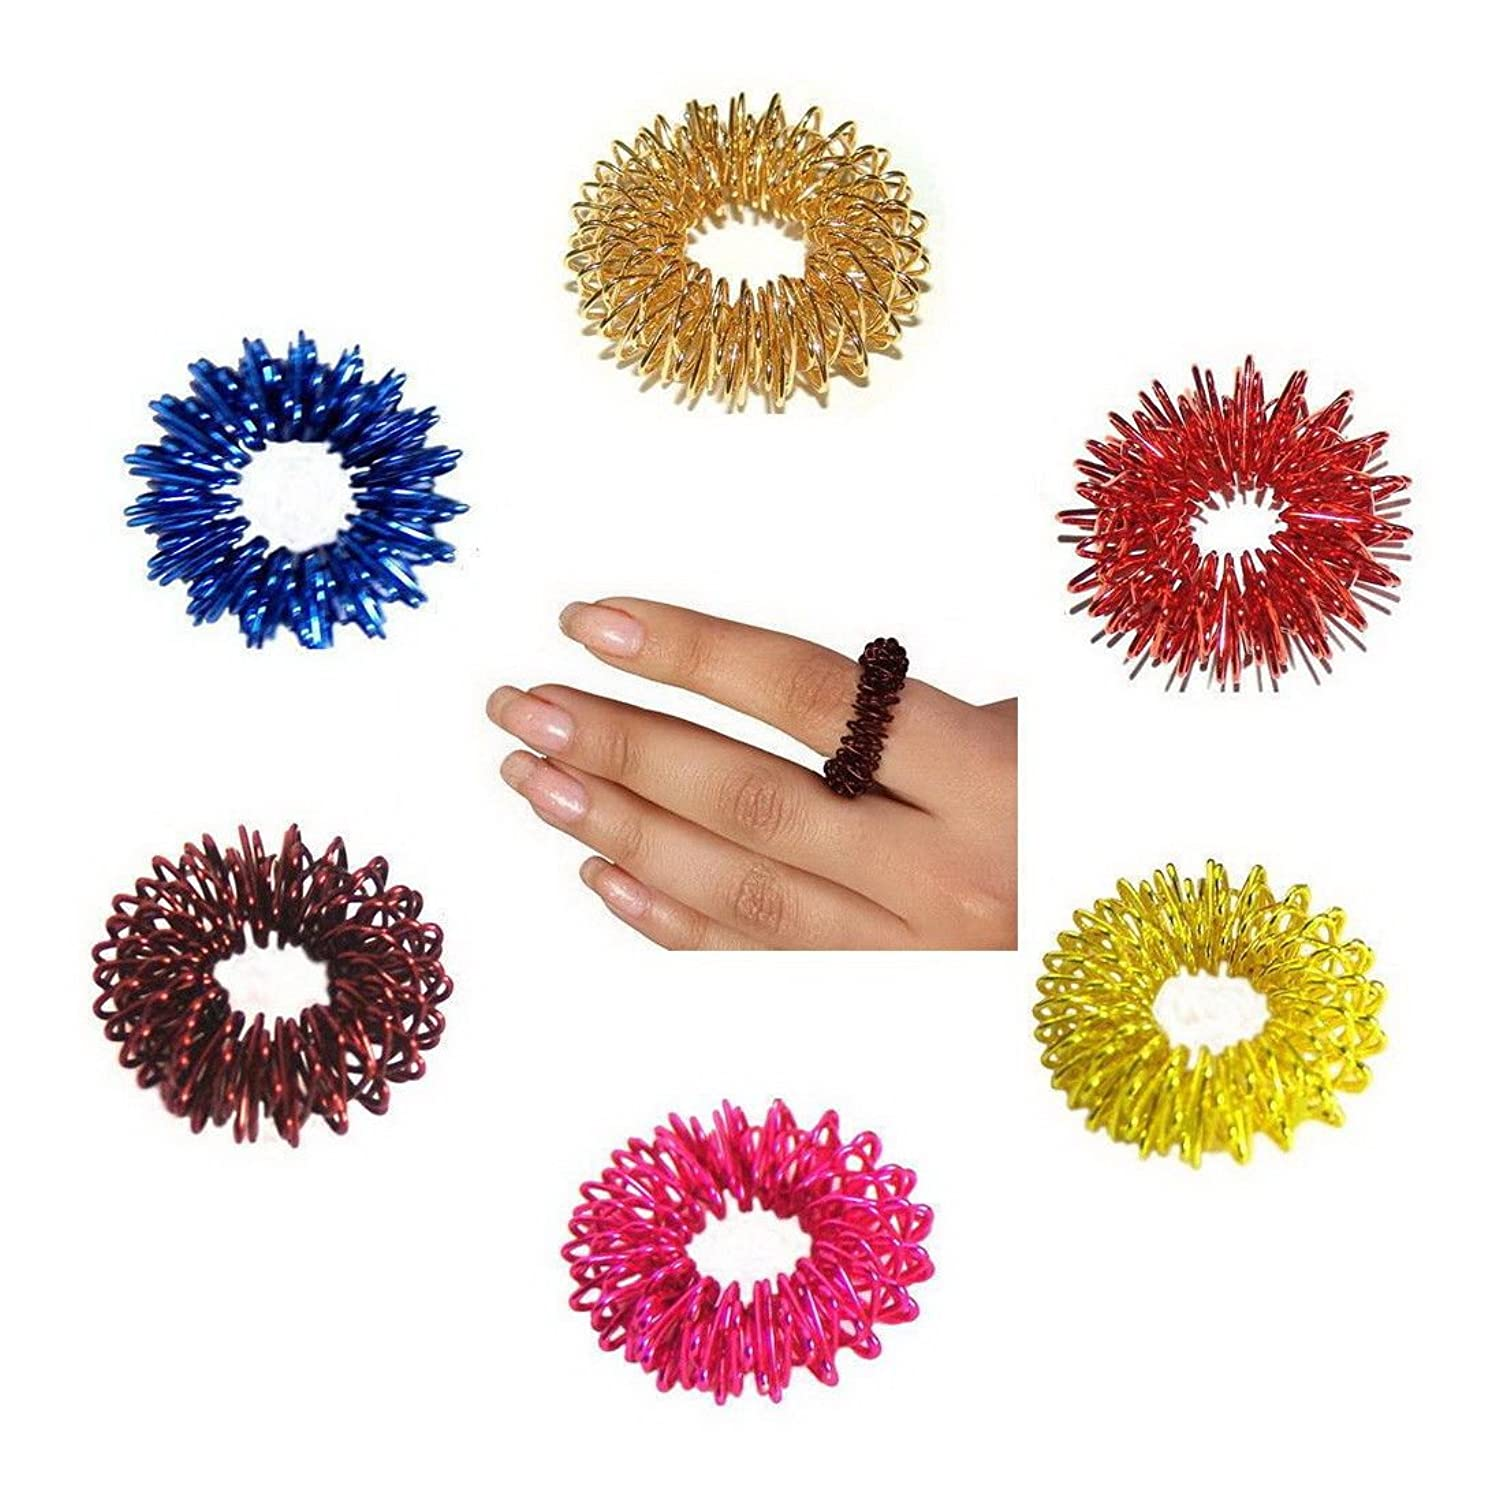 故障ピューキロメートルBuycrafty 10 Pcs Acupressure Rings Massage Ring Massager relaxology, BEST High Density Deep Tissue Acupressure